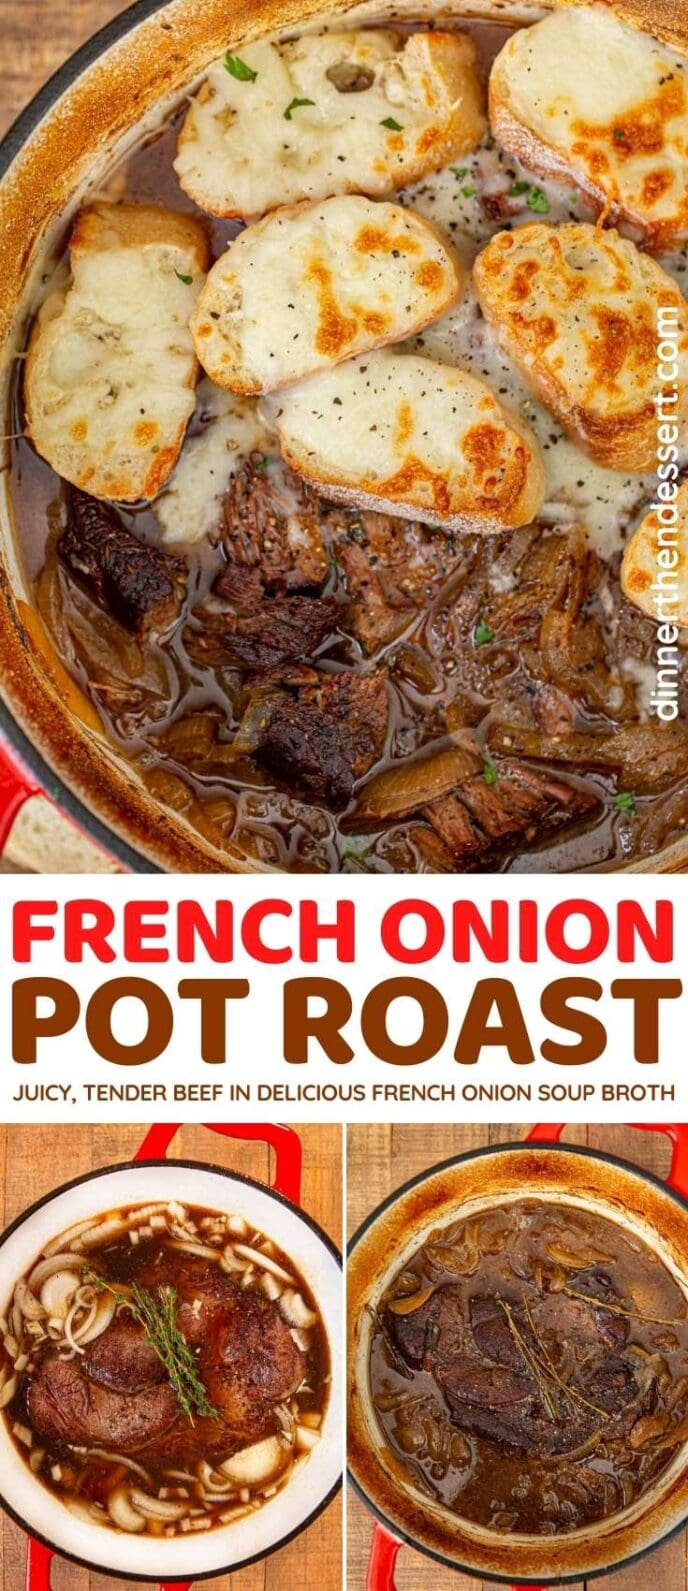 French Onion Pot Roast collage